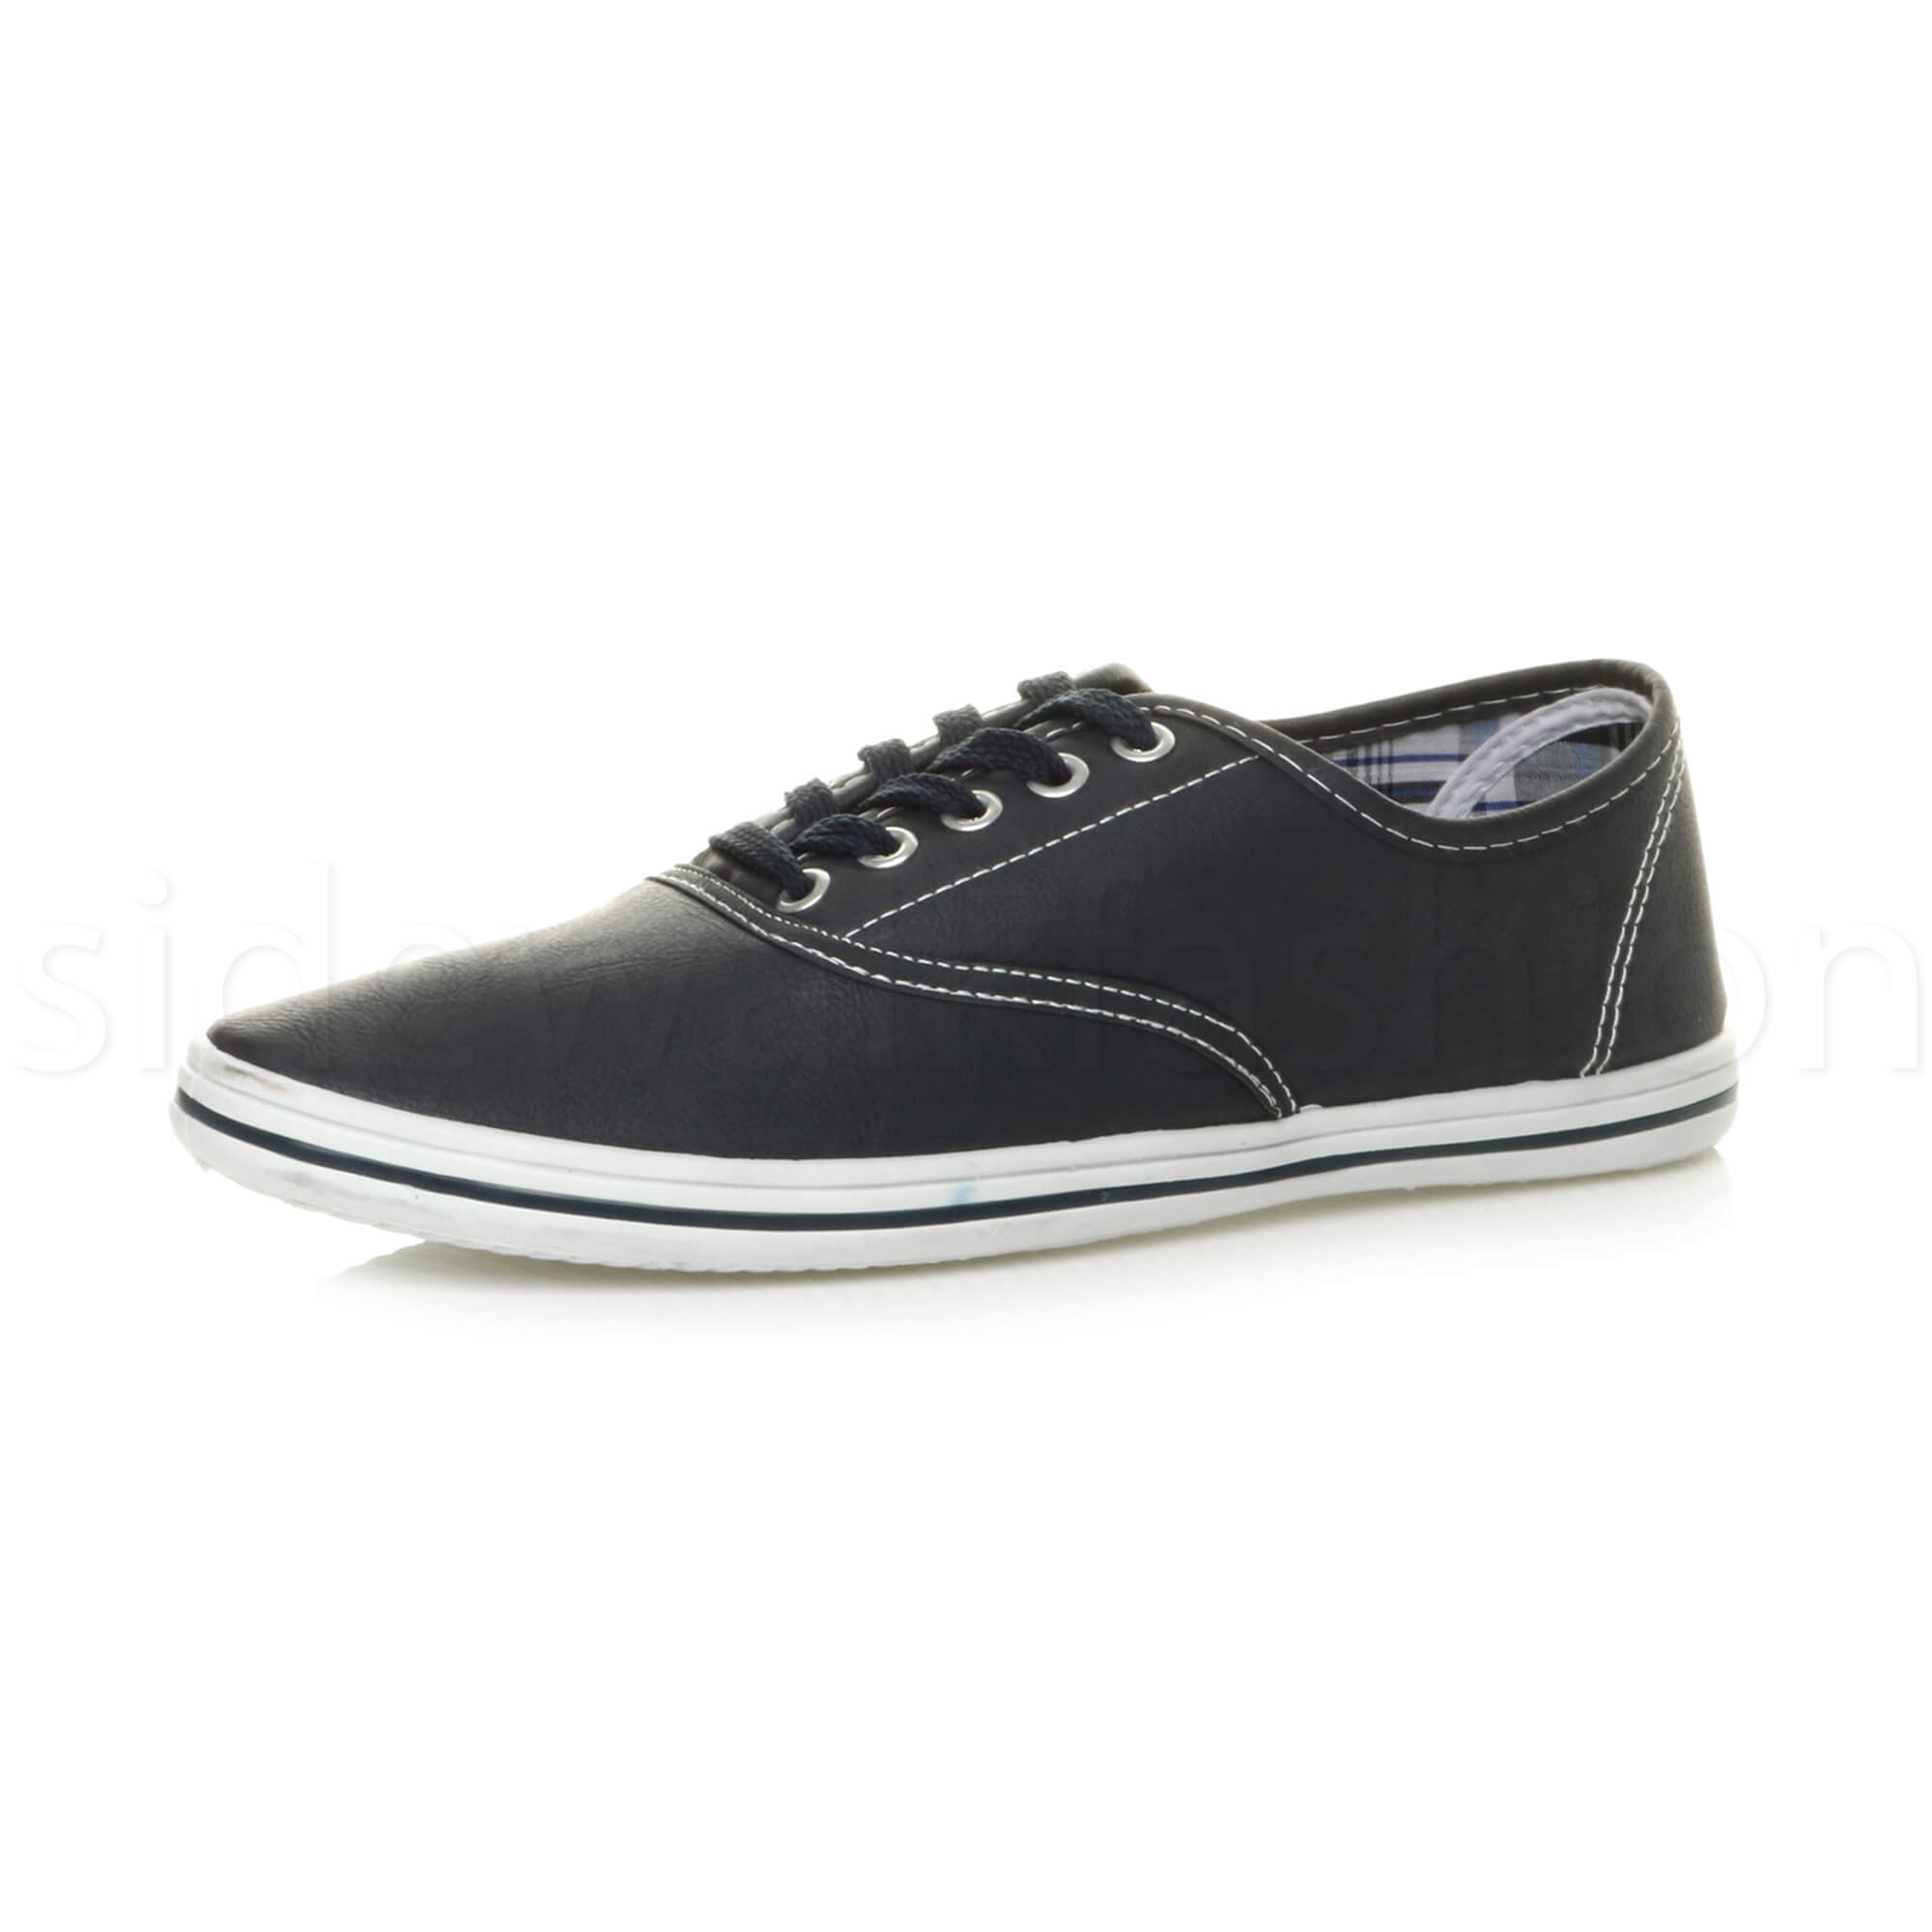 Mens-flat-lace-up-work-smart-plain-casual-pump-plimsoles-trainers-shoes-size thumbnail 9